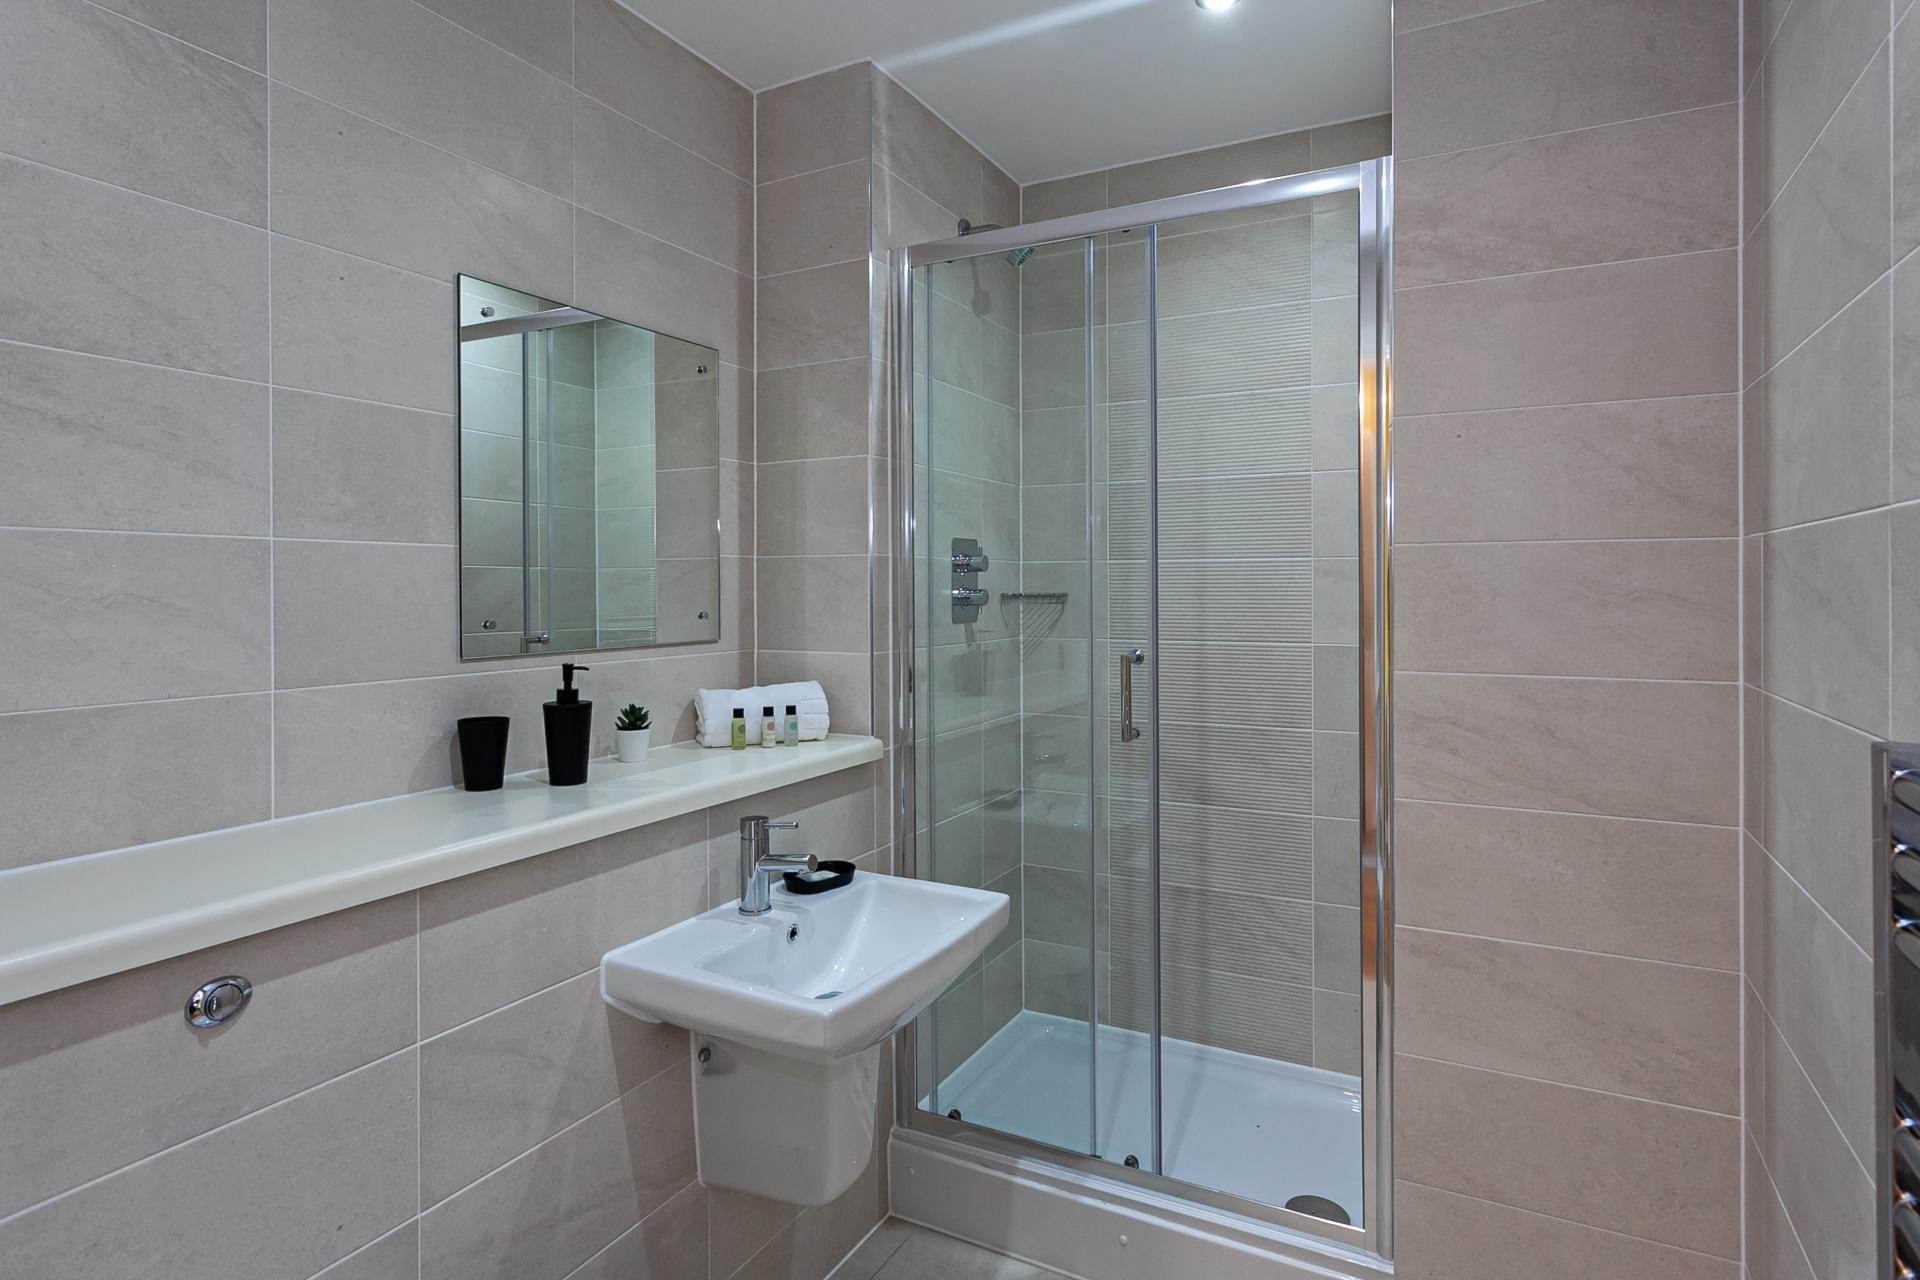 Bathroom at Michigan Point Tower, Ordsall, Manchester - Citybase Apartments